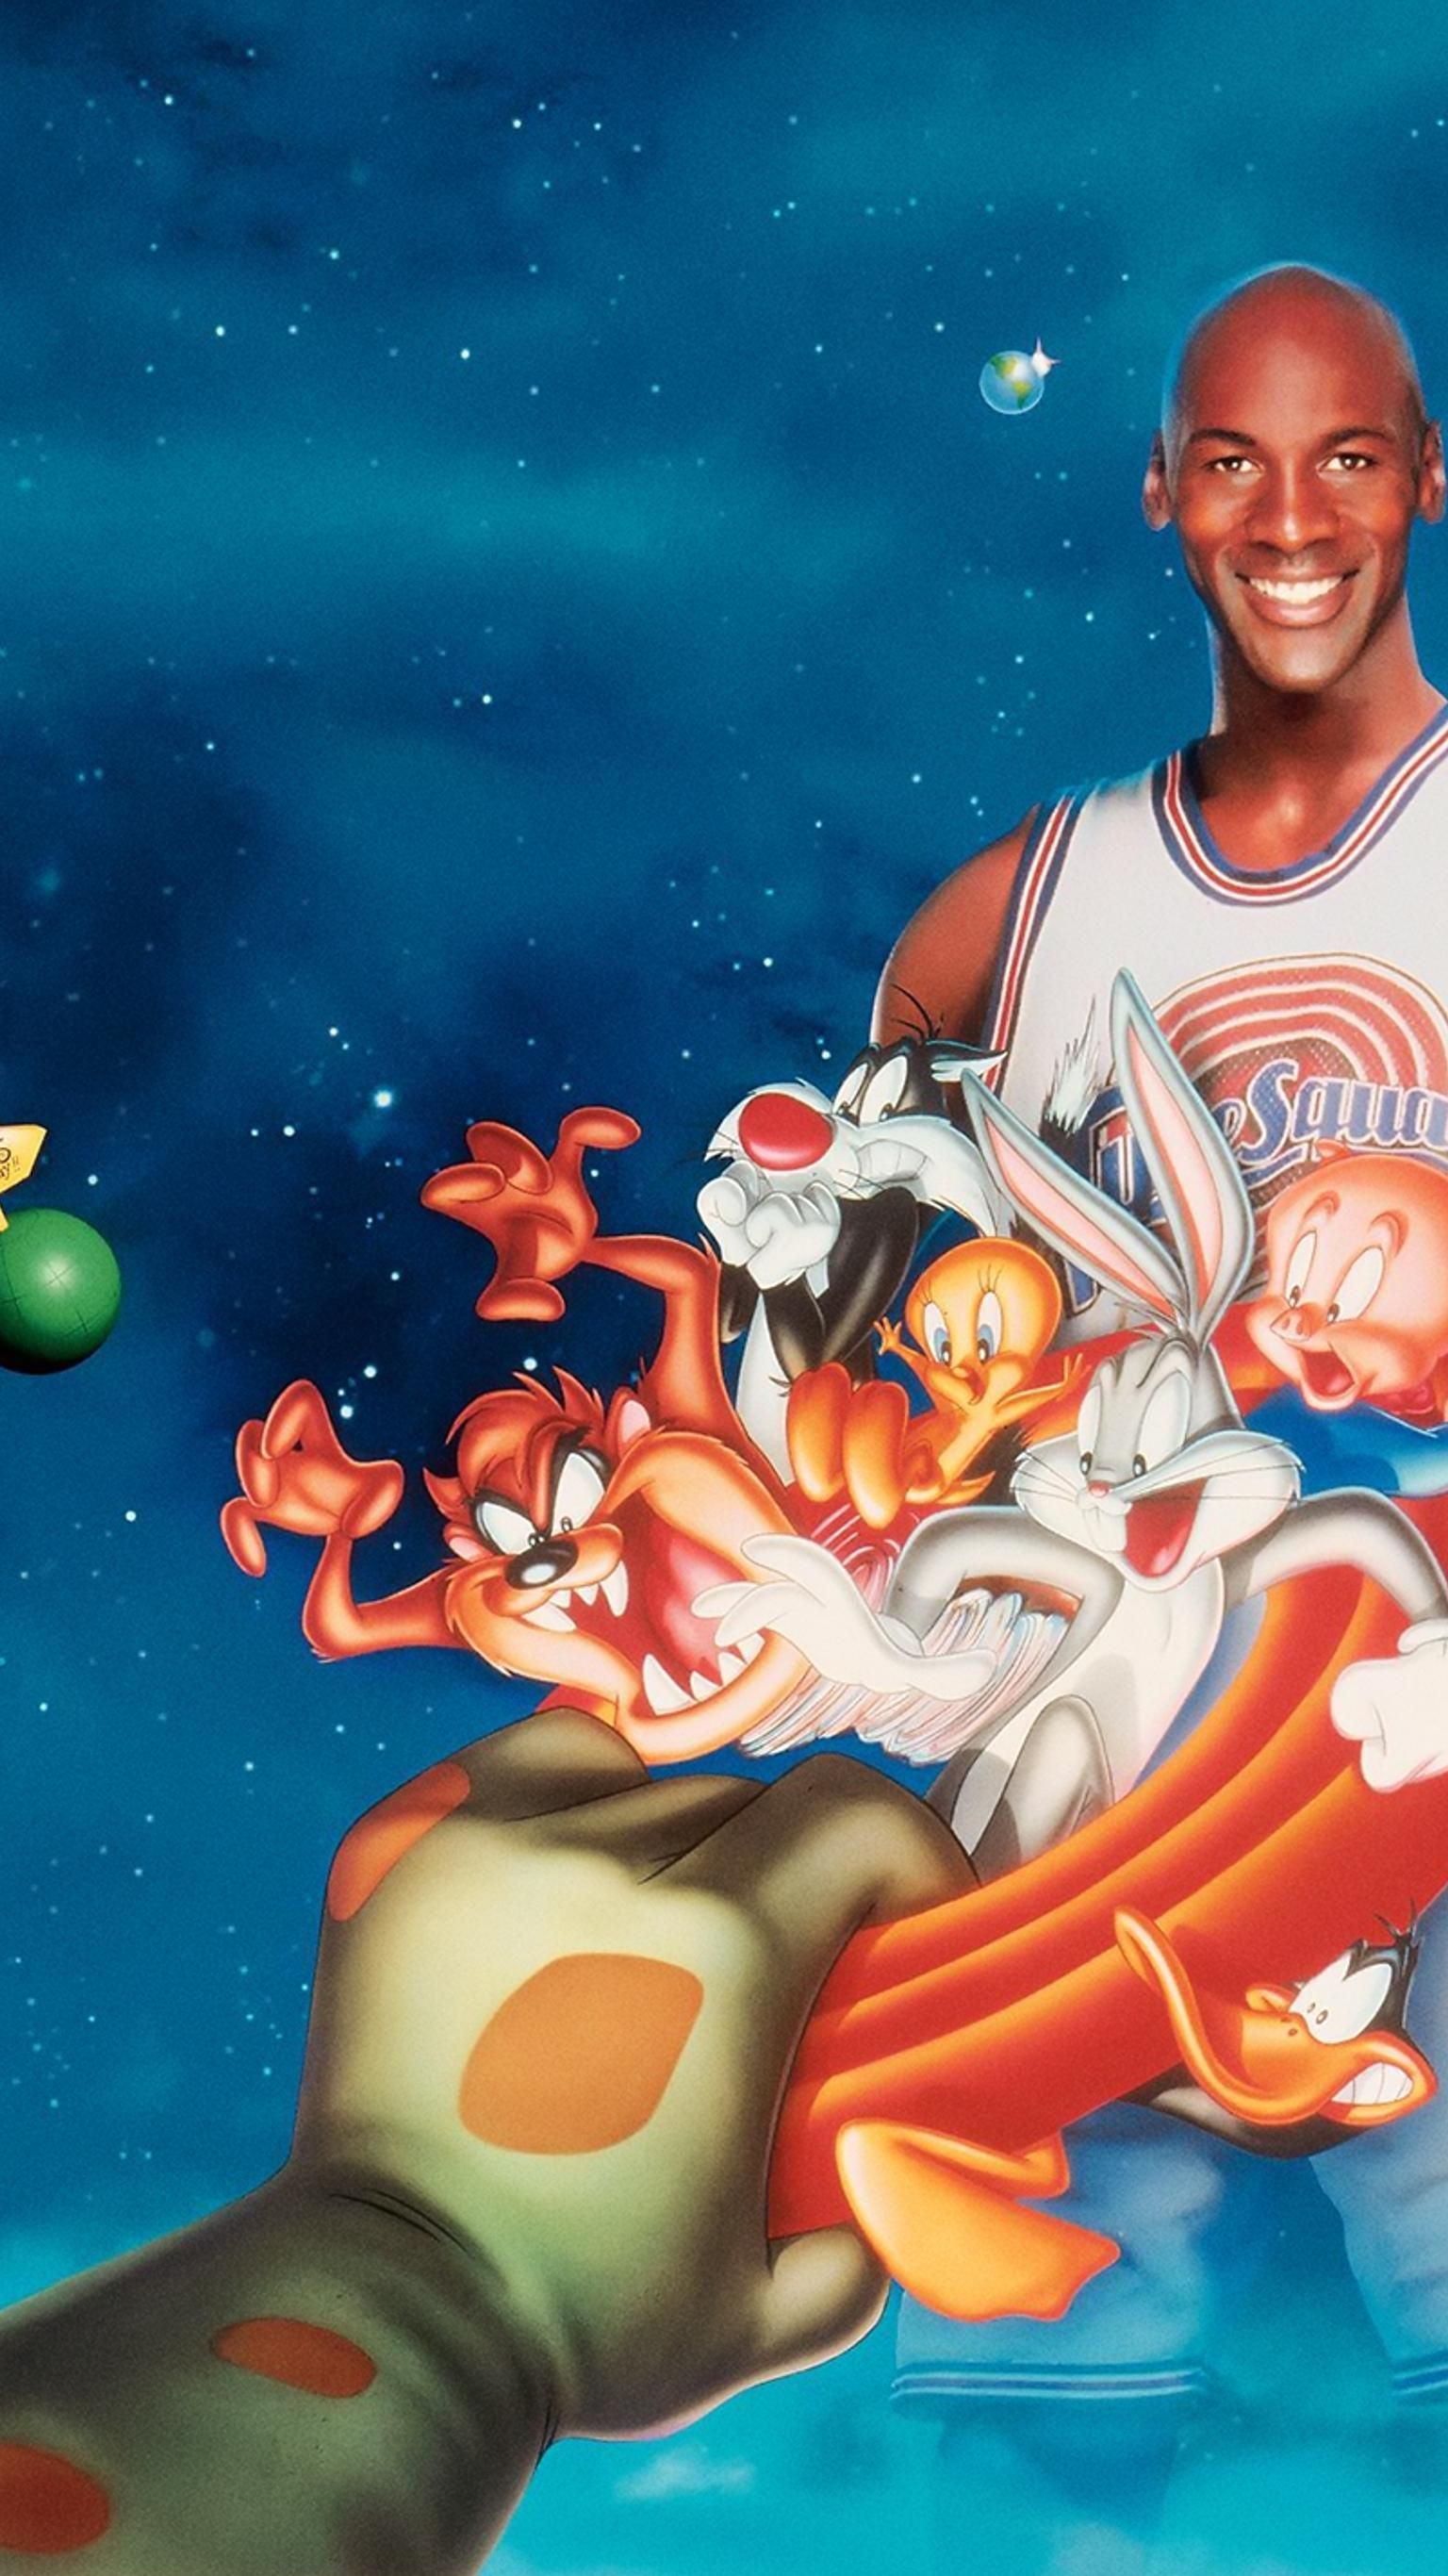 Space Jam 1996 Phone Wallpaper In 2020 Space Jam Looney Tunes